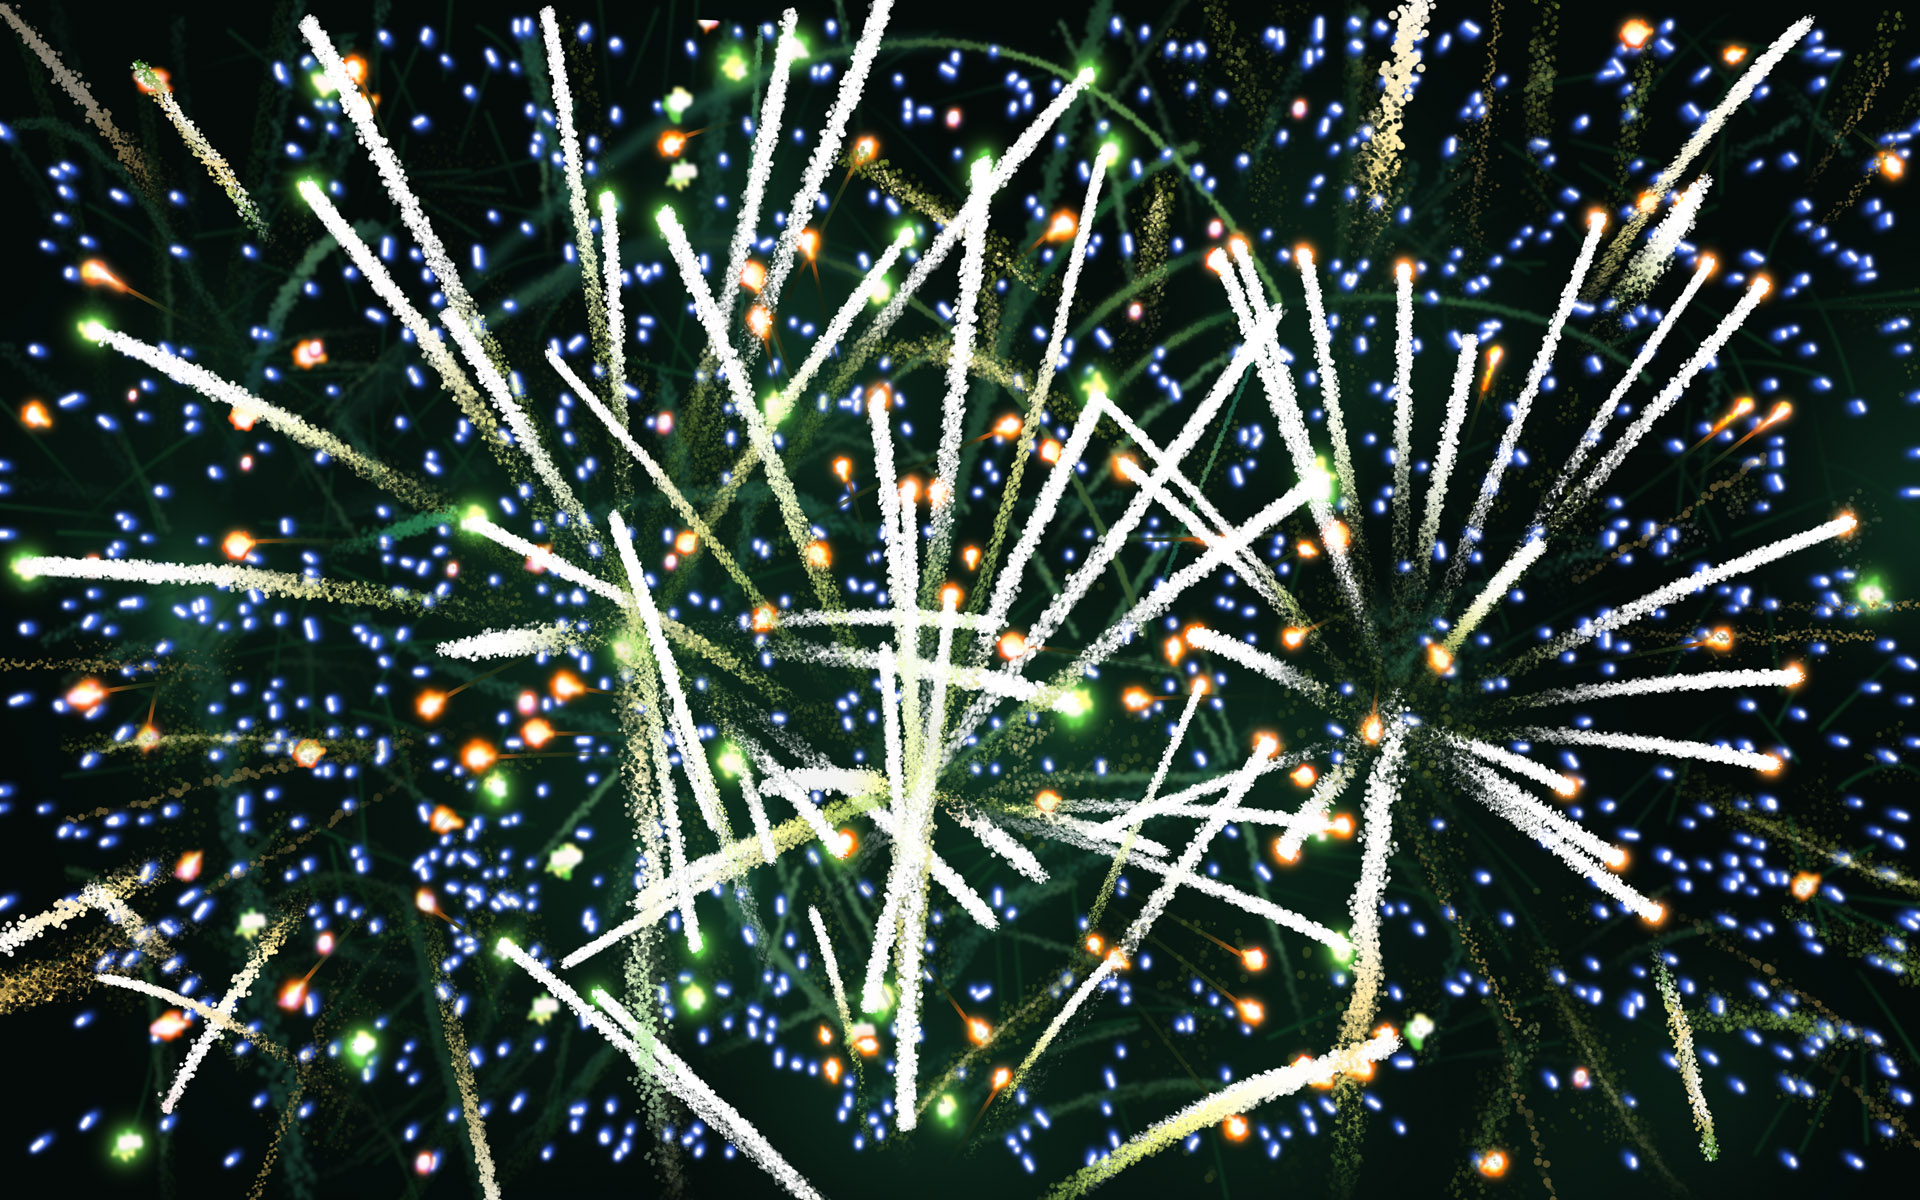 abstract fireworks wallpaper 47151